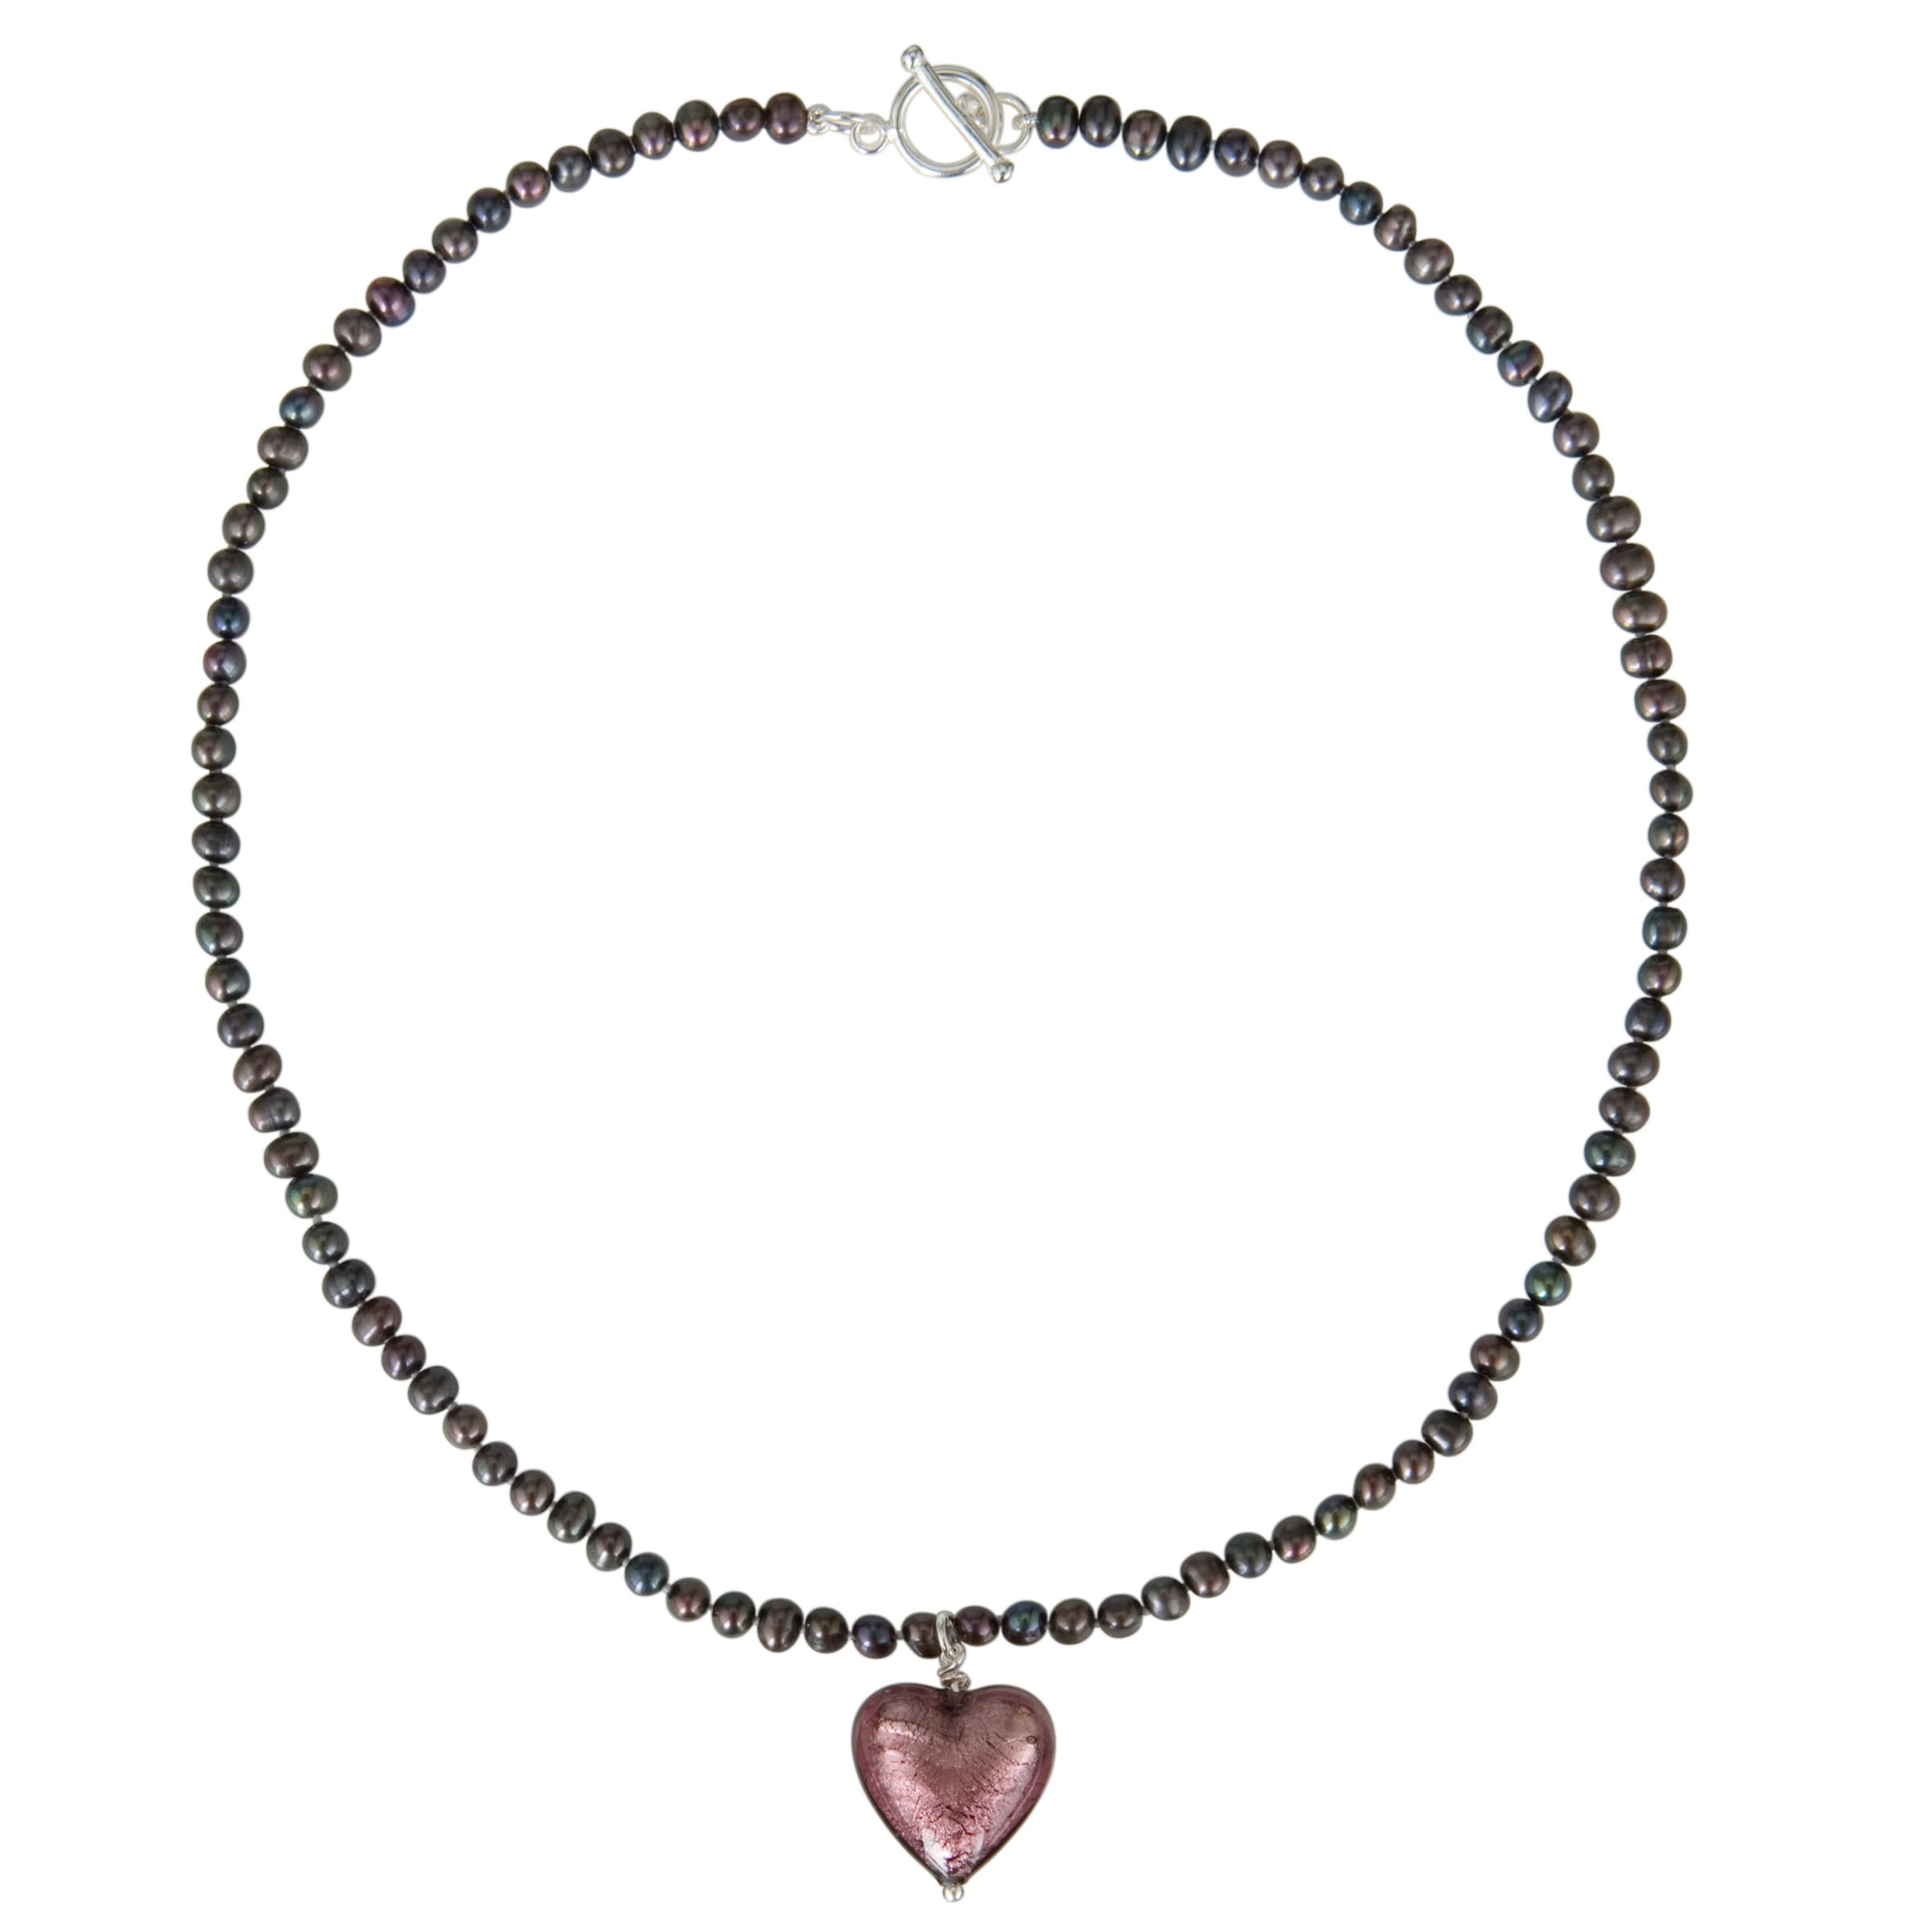 Martick Pearl - Peacock Pearl with Plum Murano Heart Necklace, Plum